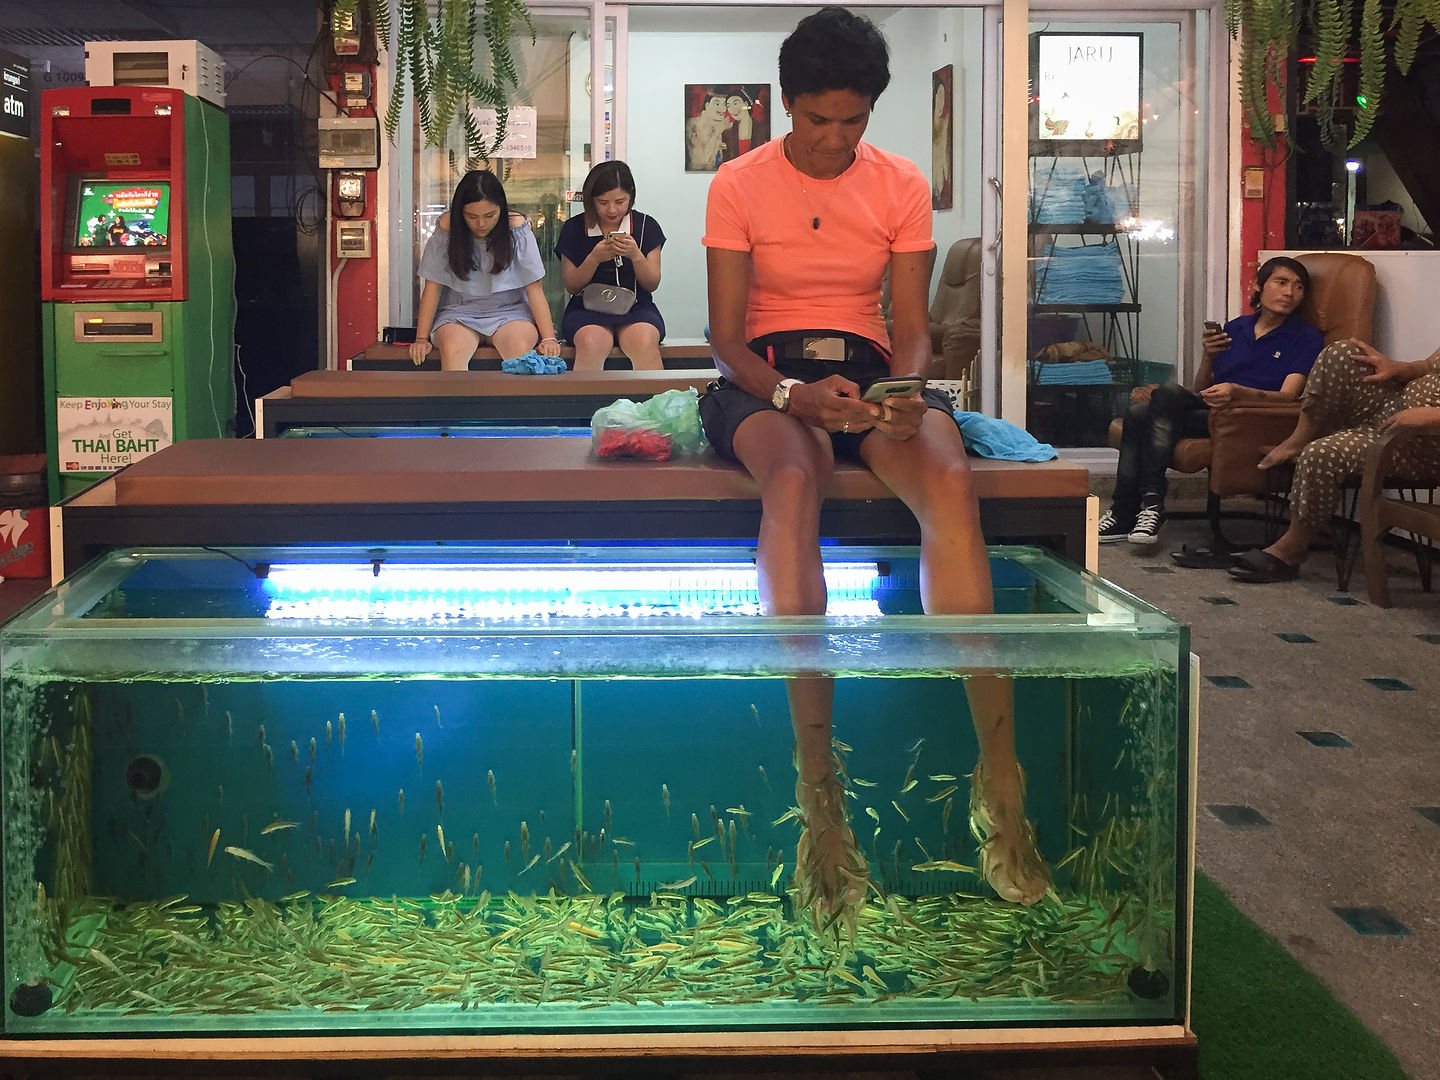 Fish spa anyone?